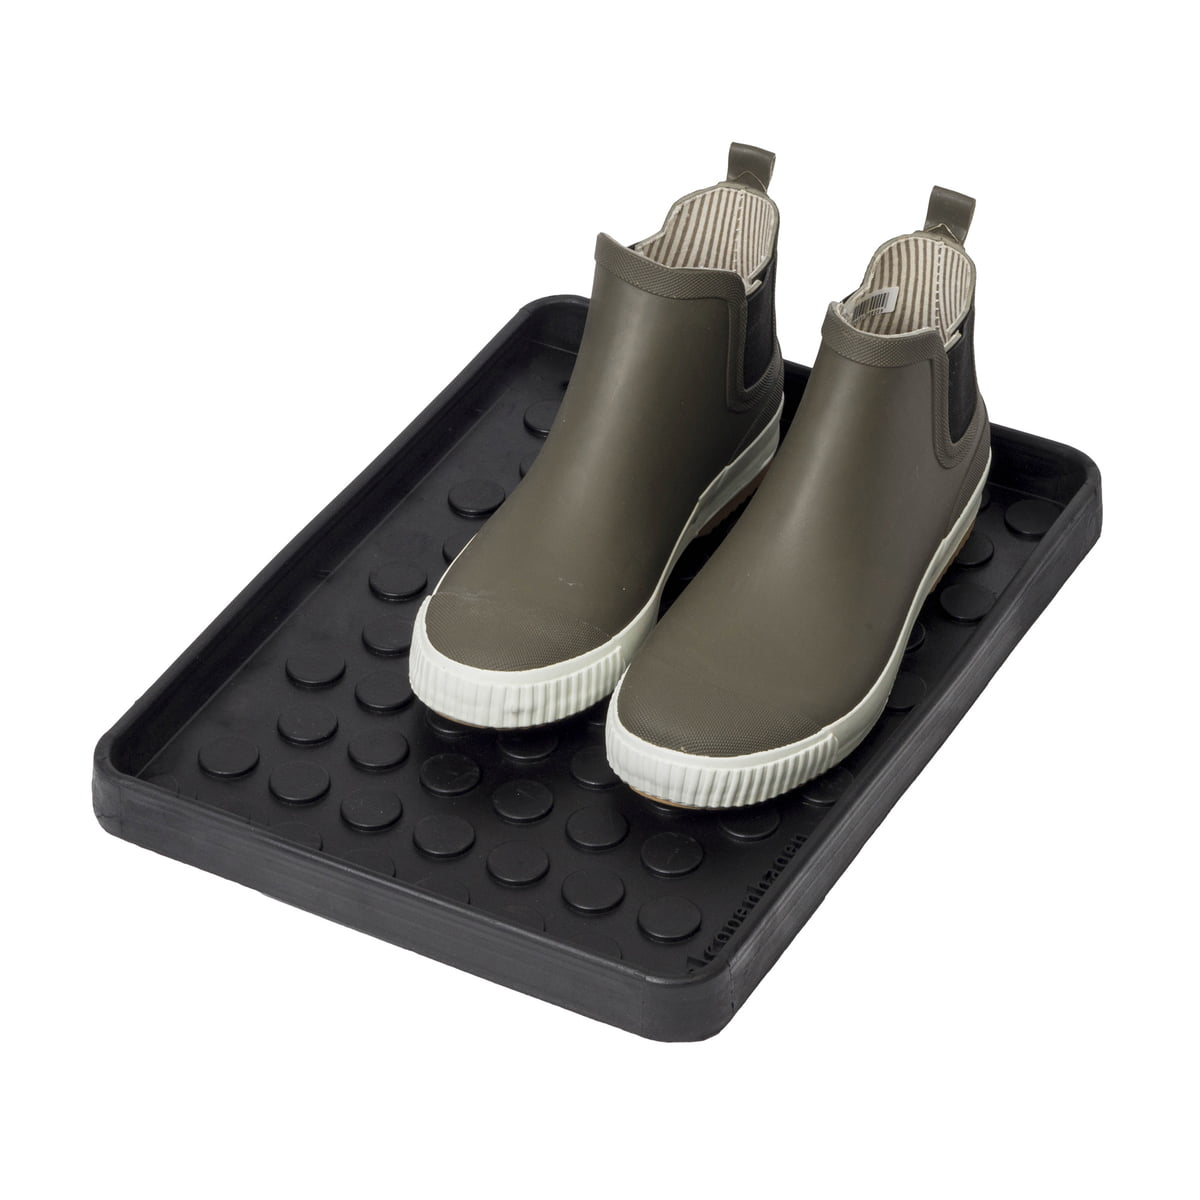 Shoe an boot tray tica copenhagen 28x38 cm Dots